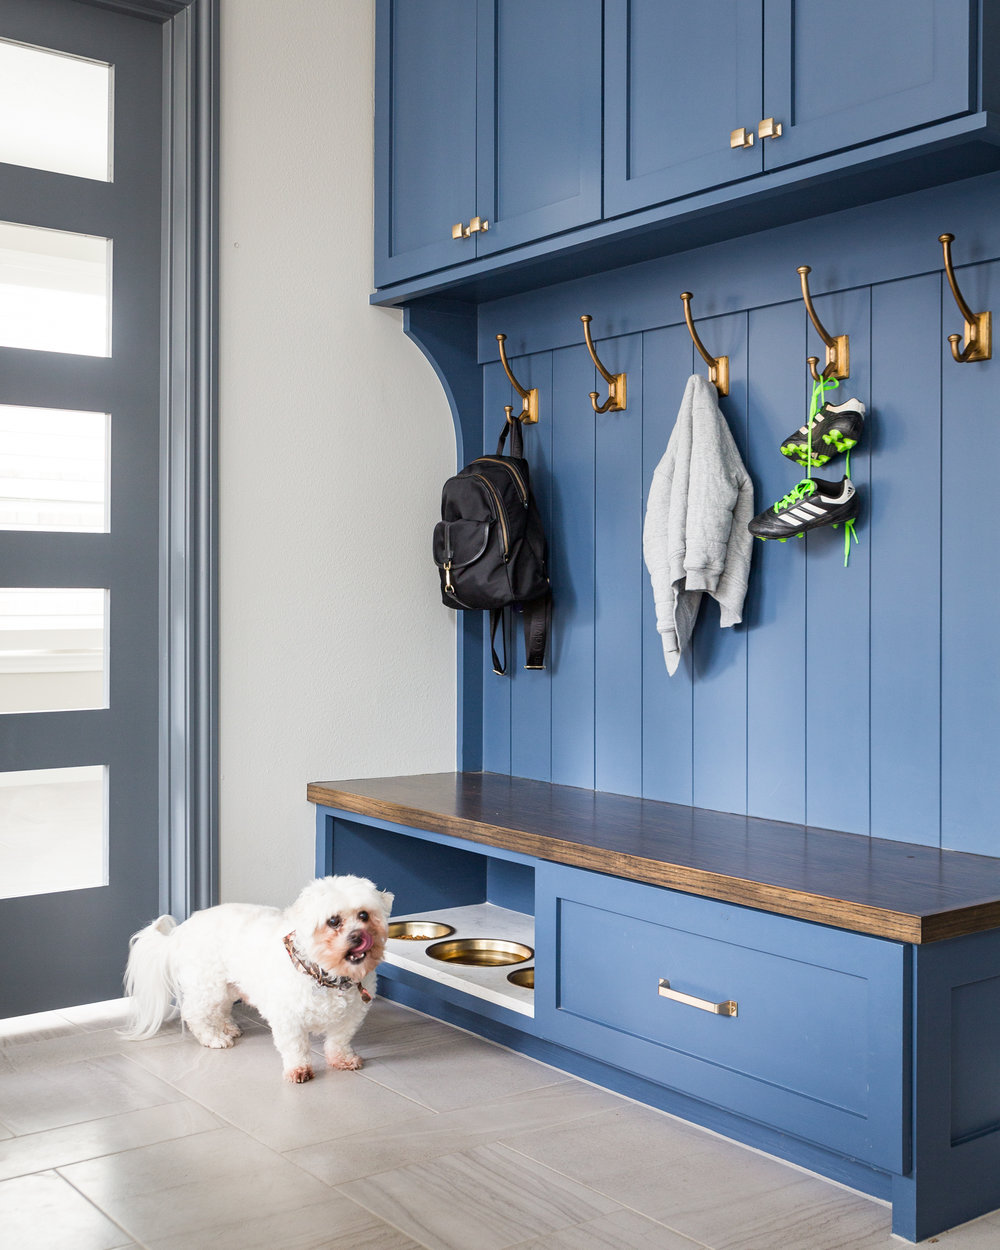 BEFORE AND AFTER - A navy and white kitchen remodel w/ built in breakfast nook | Carla Aston, Designer | Colleen Scott, Photographer #mudroom #dogbowl #bench #cabinetry